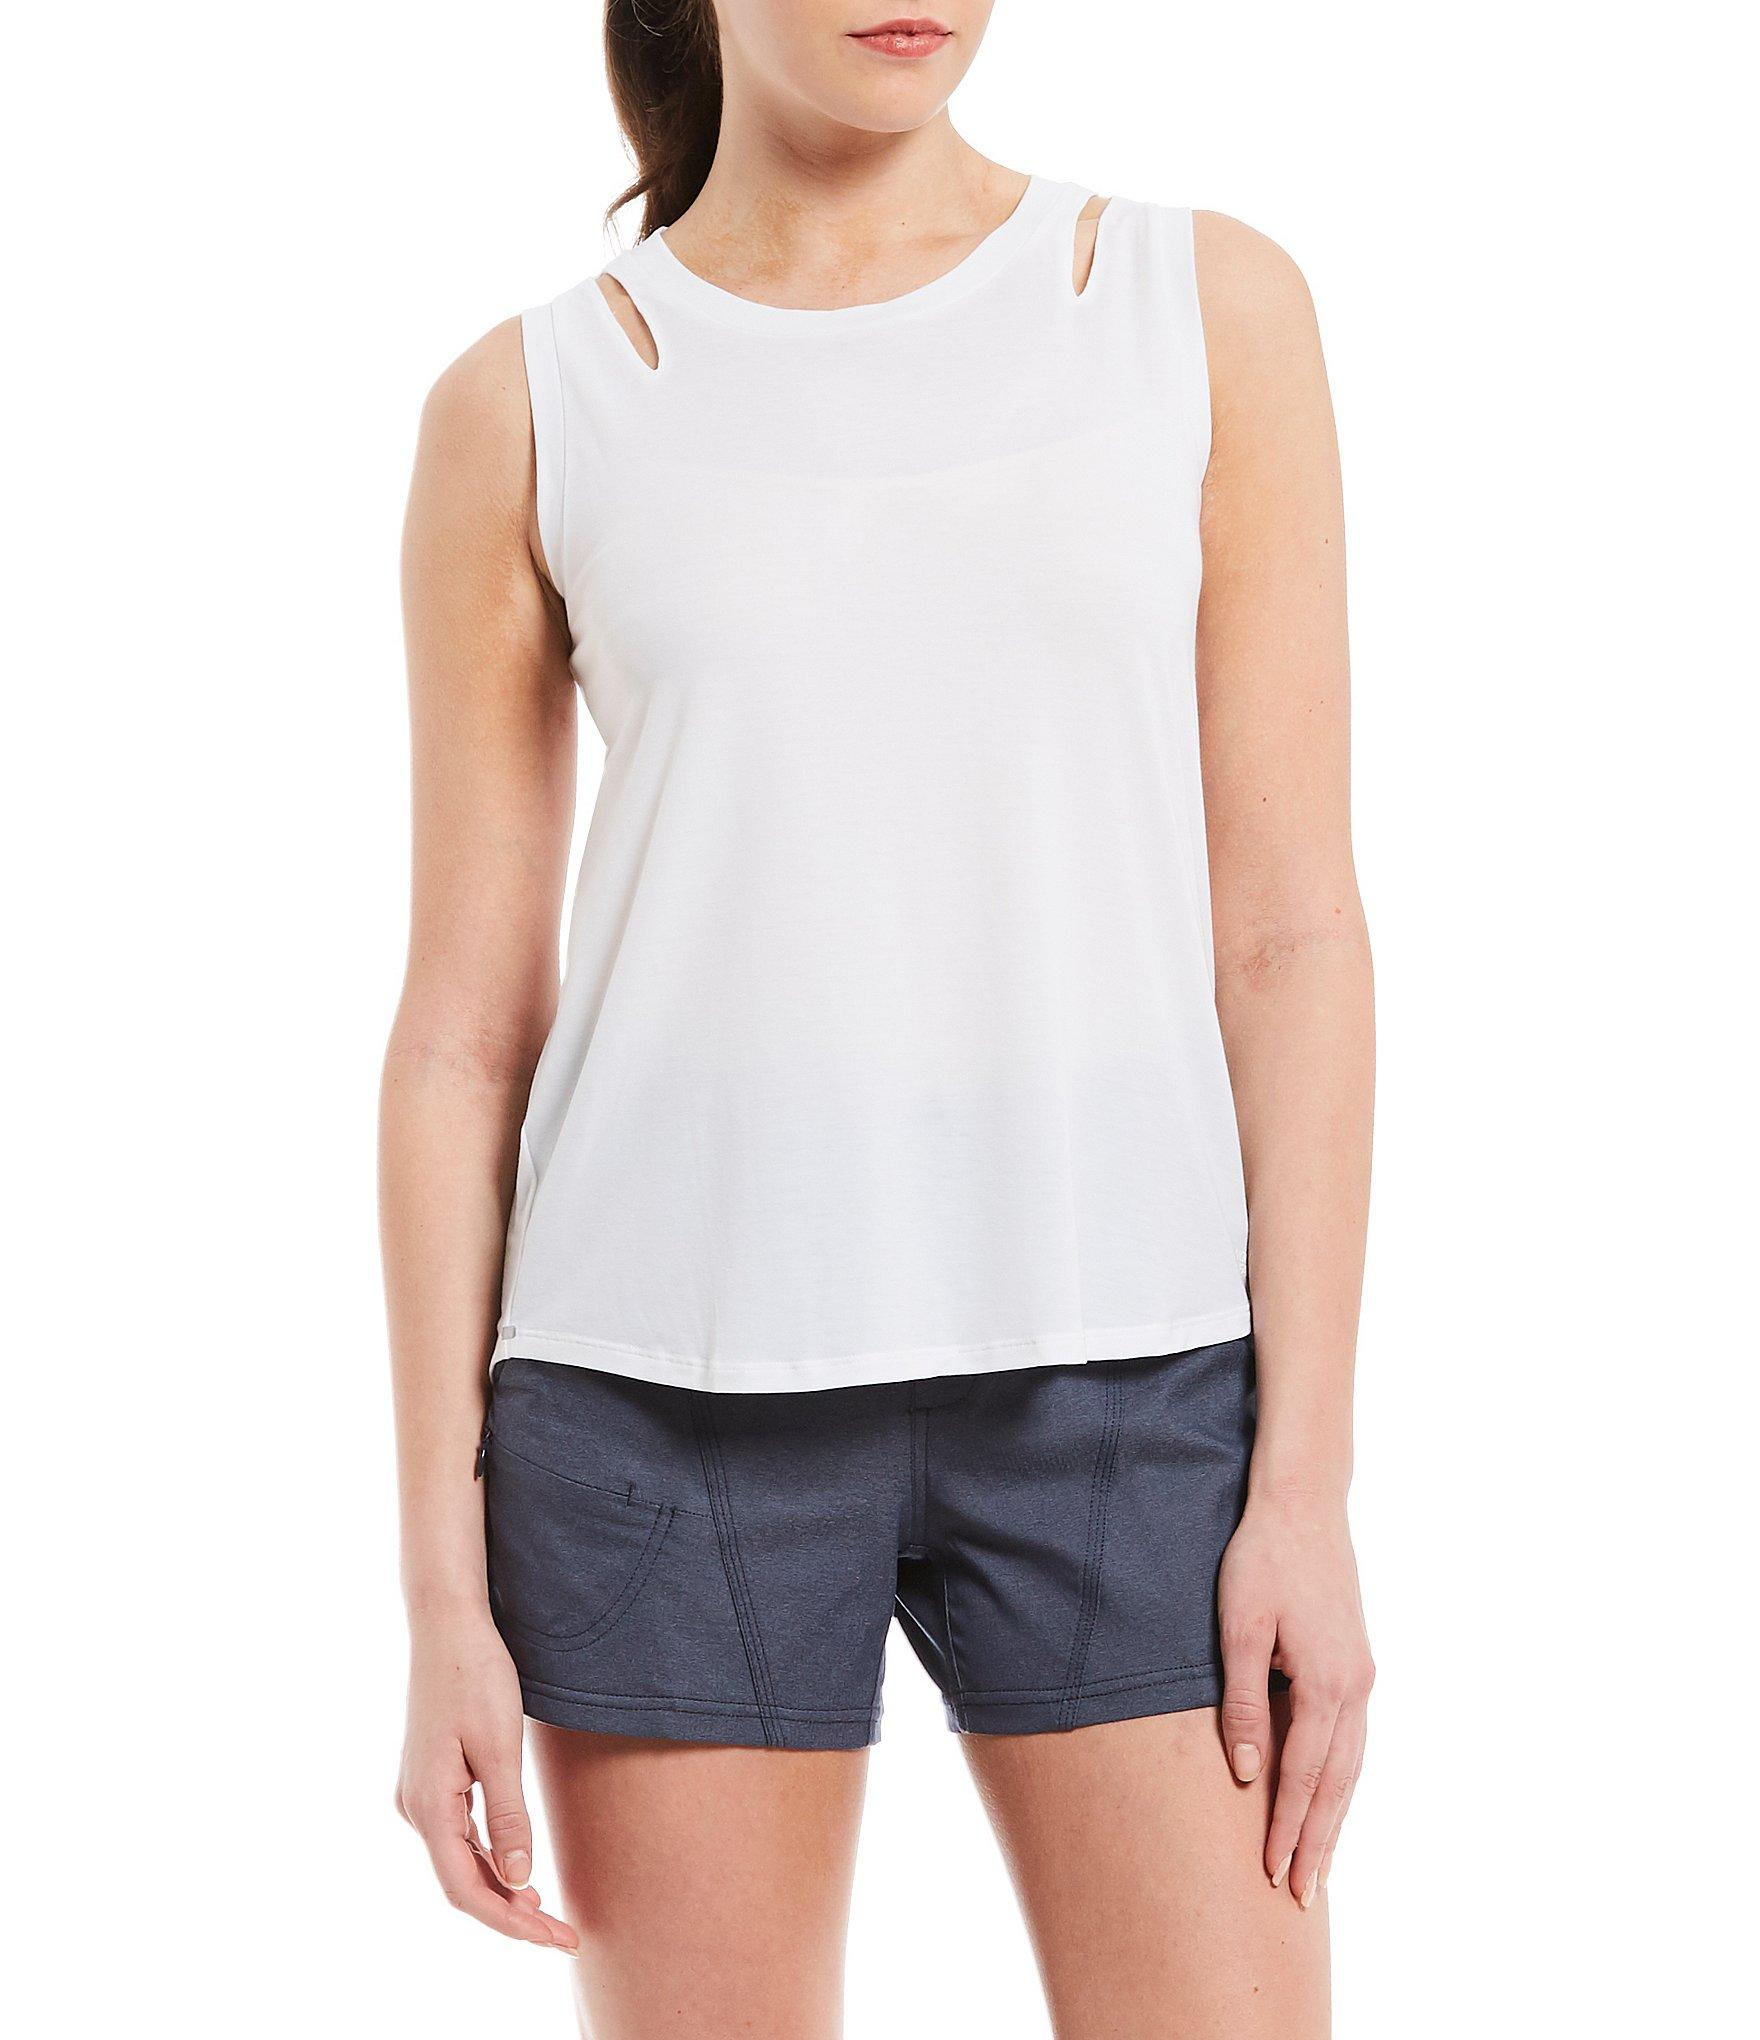 ab1b7ef09ba09 The North Face. Women s White Beyond The Wall Novelty Cut Out Sleeve Tank  Top